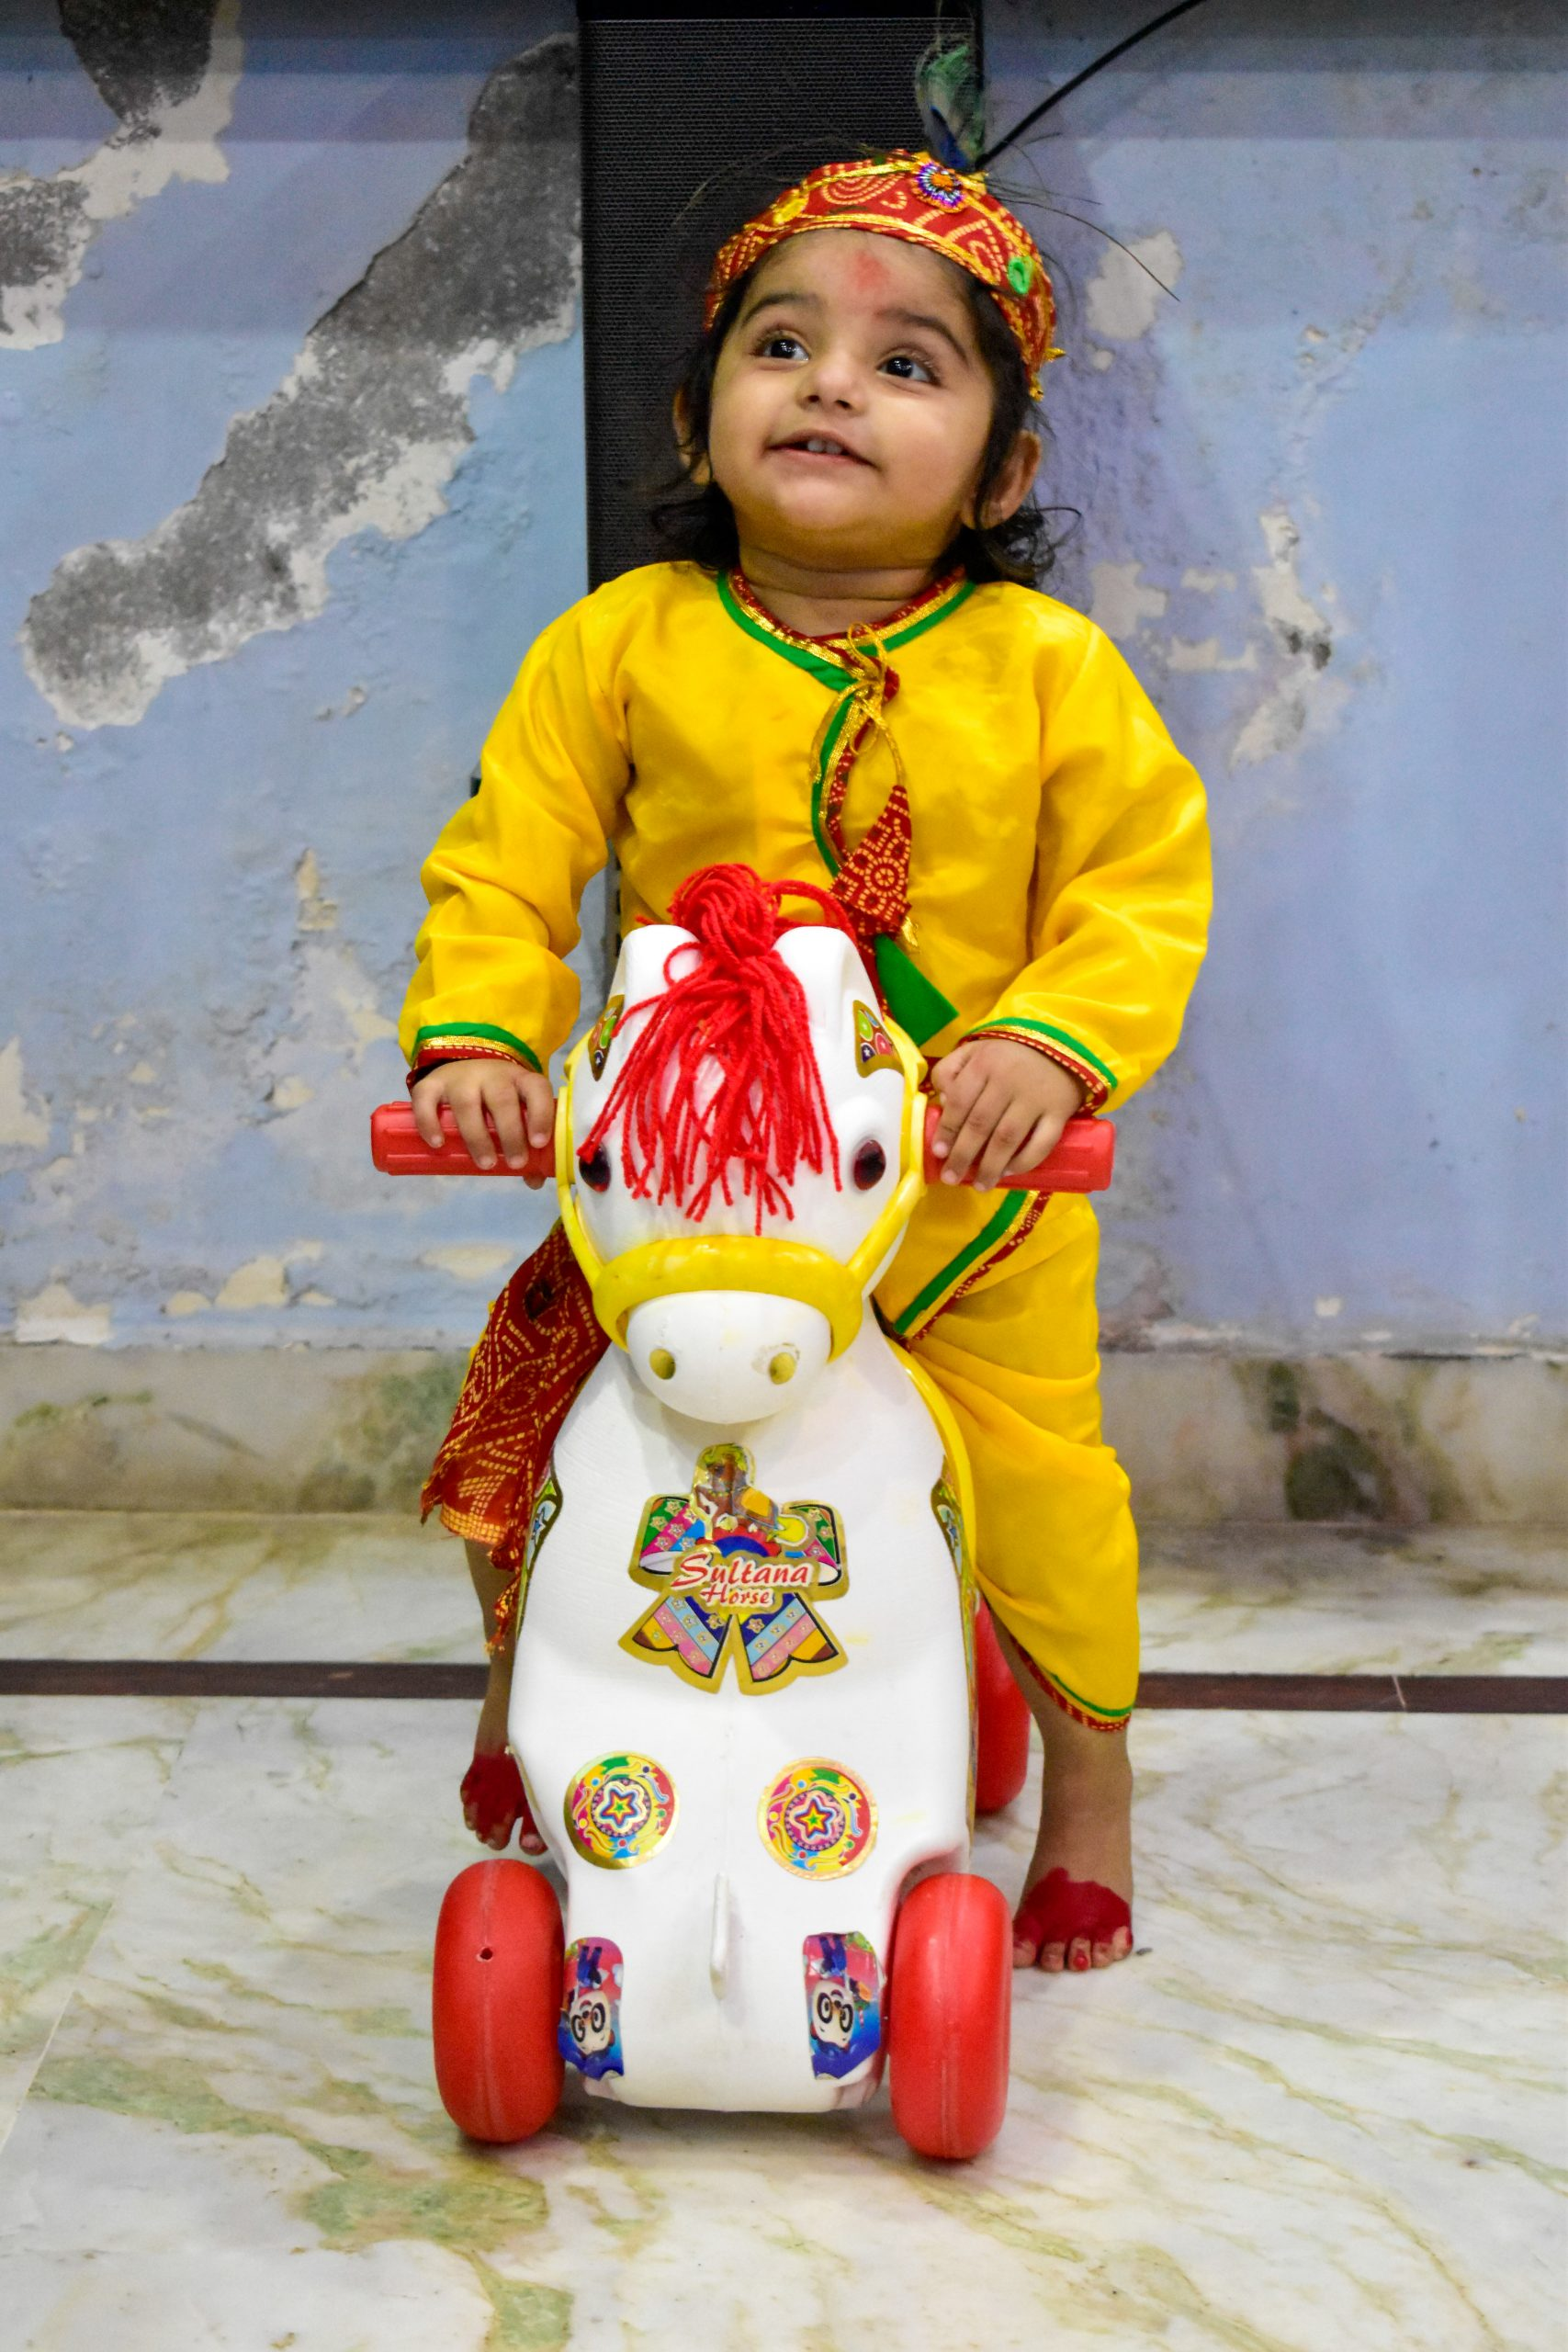 Baby on toy horse